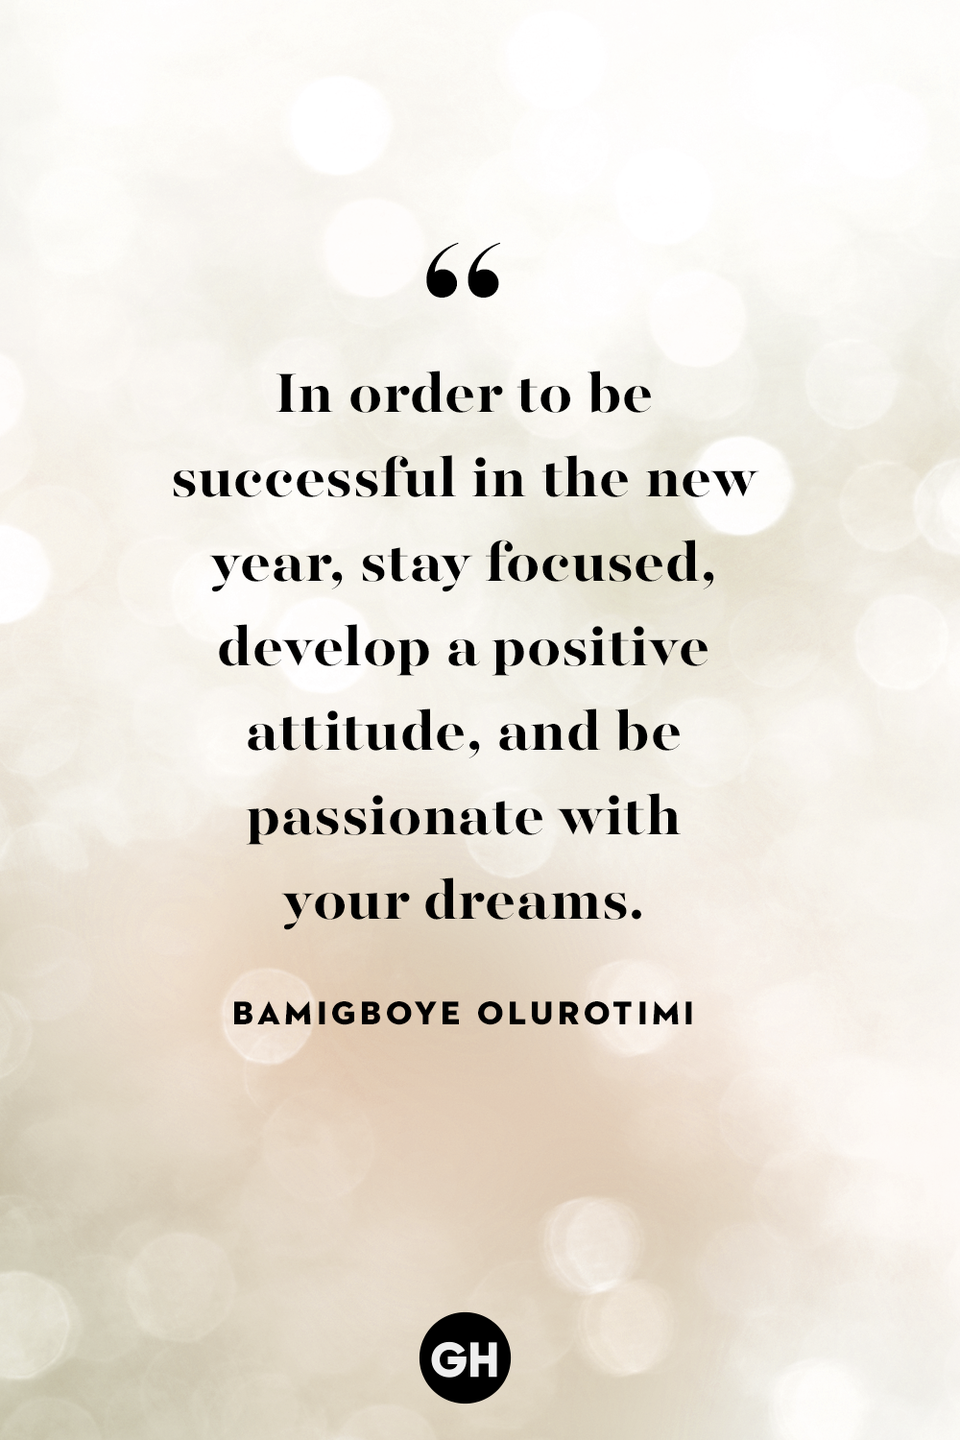 <p>In order to be successful in the new year, stay focused, develop a positive attitude and be passionate with your dreams.</p>